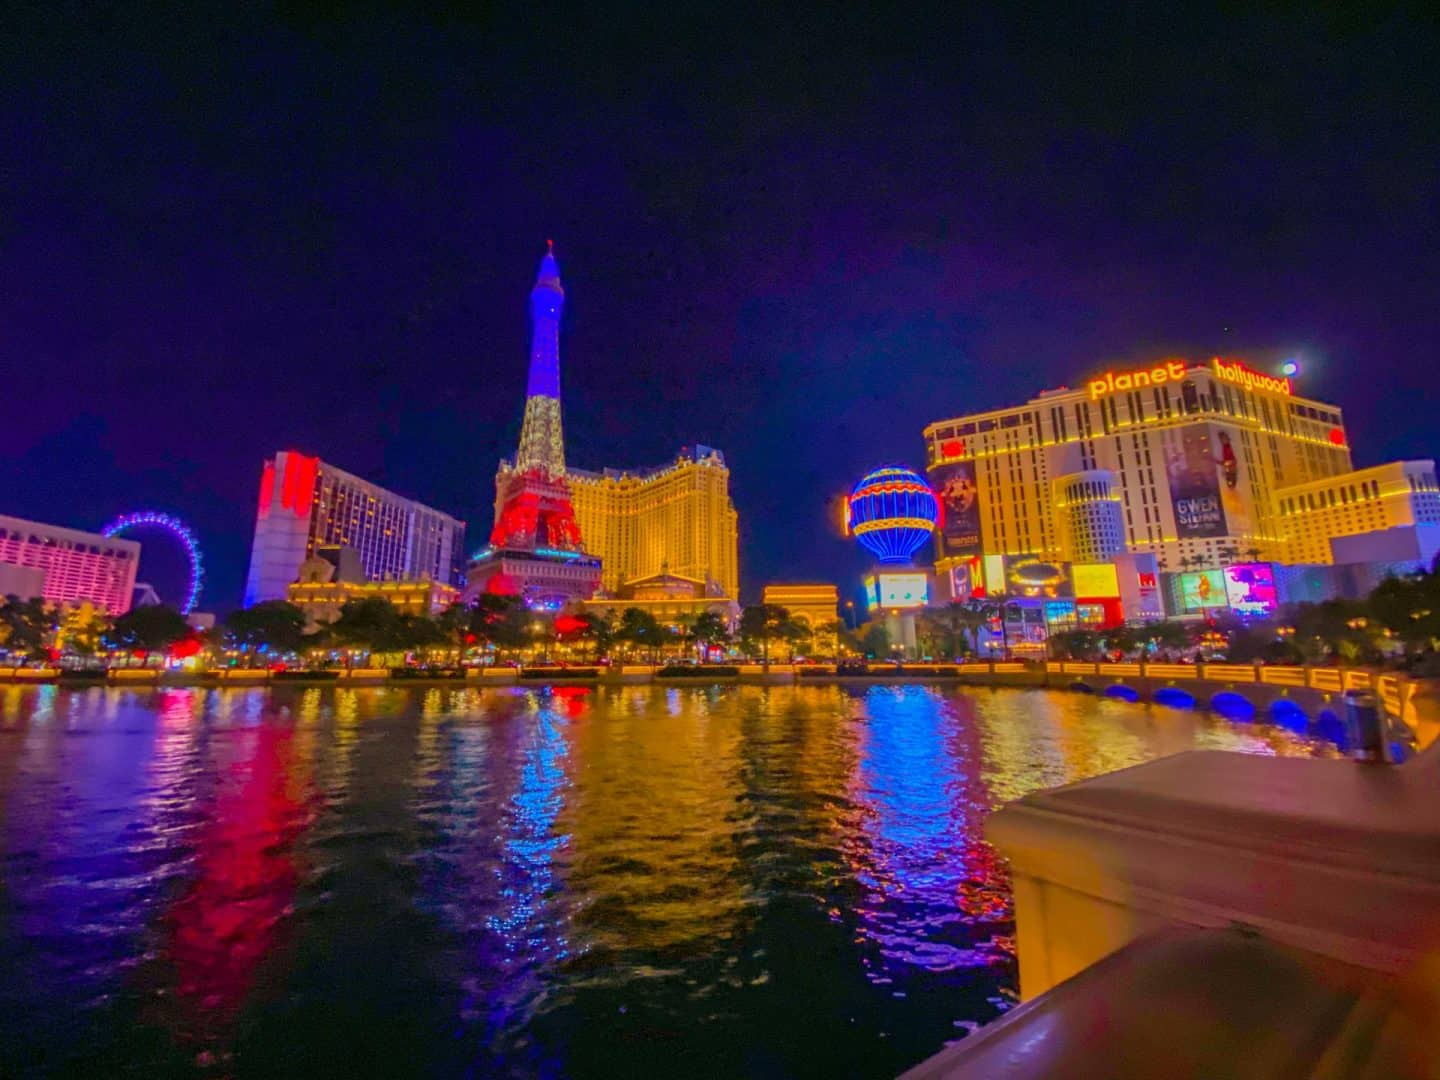 What are other top attractions to visit in Las Vegas?